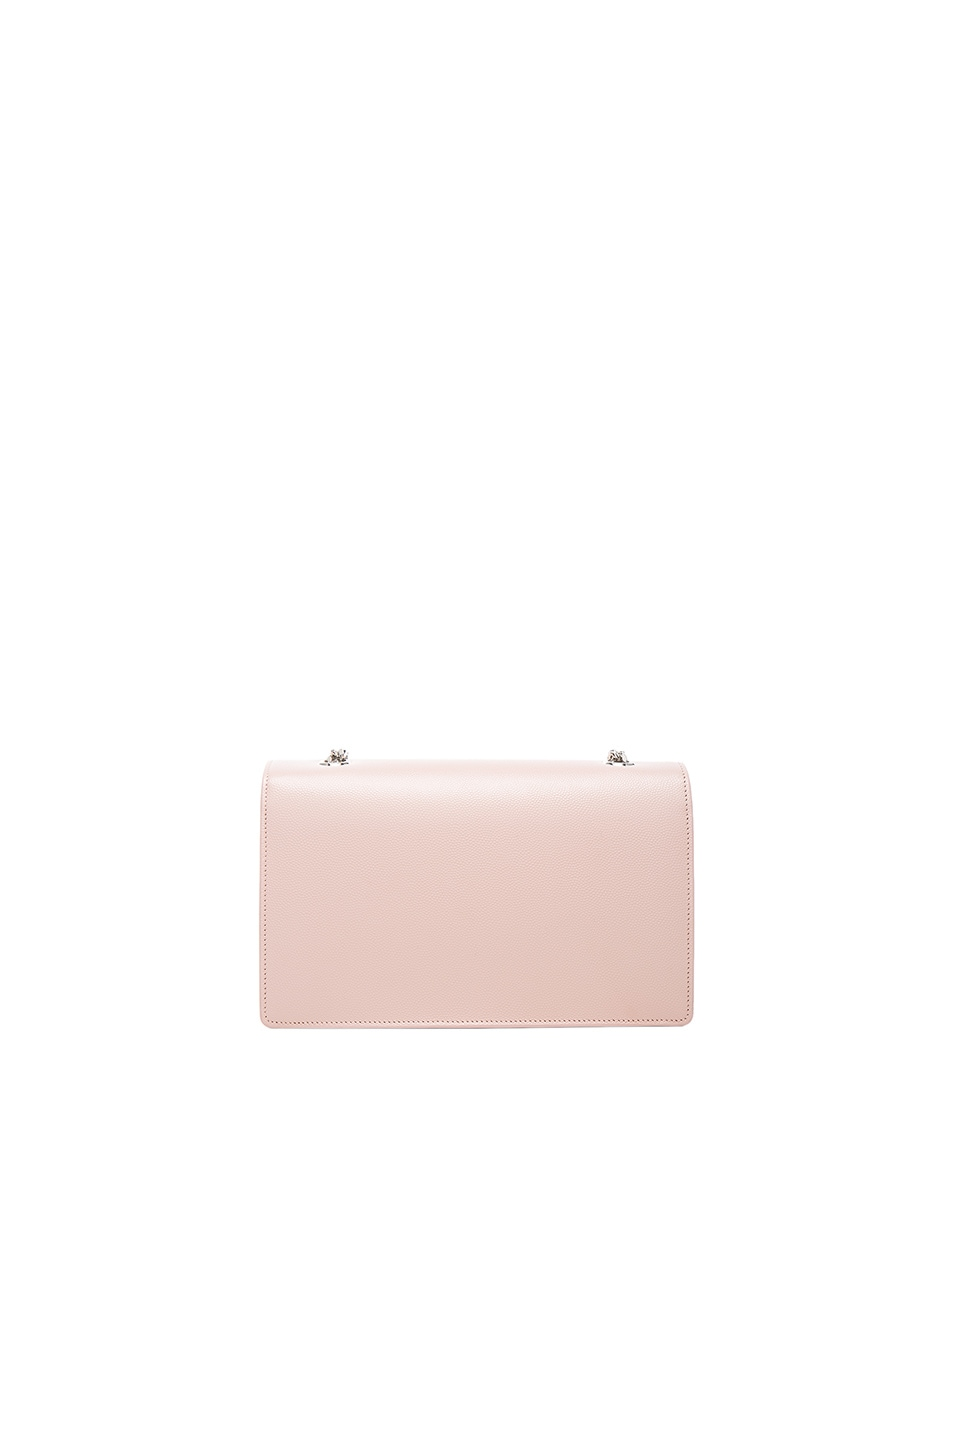 Small Cabas Rive Gauche Bag In Black, Red, Dove White, Light Blue And Yellow Leather